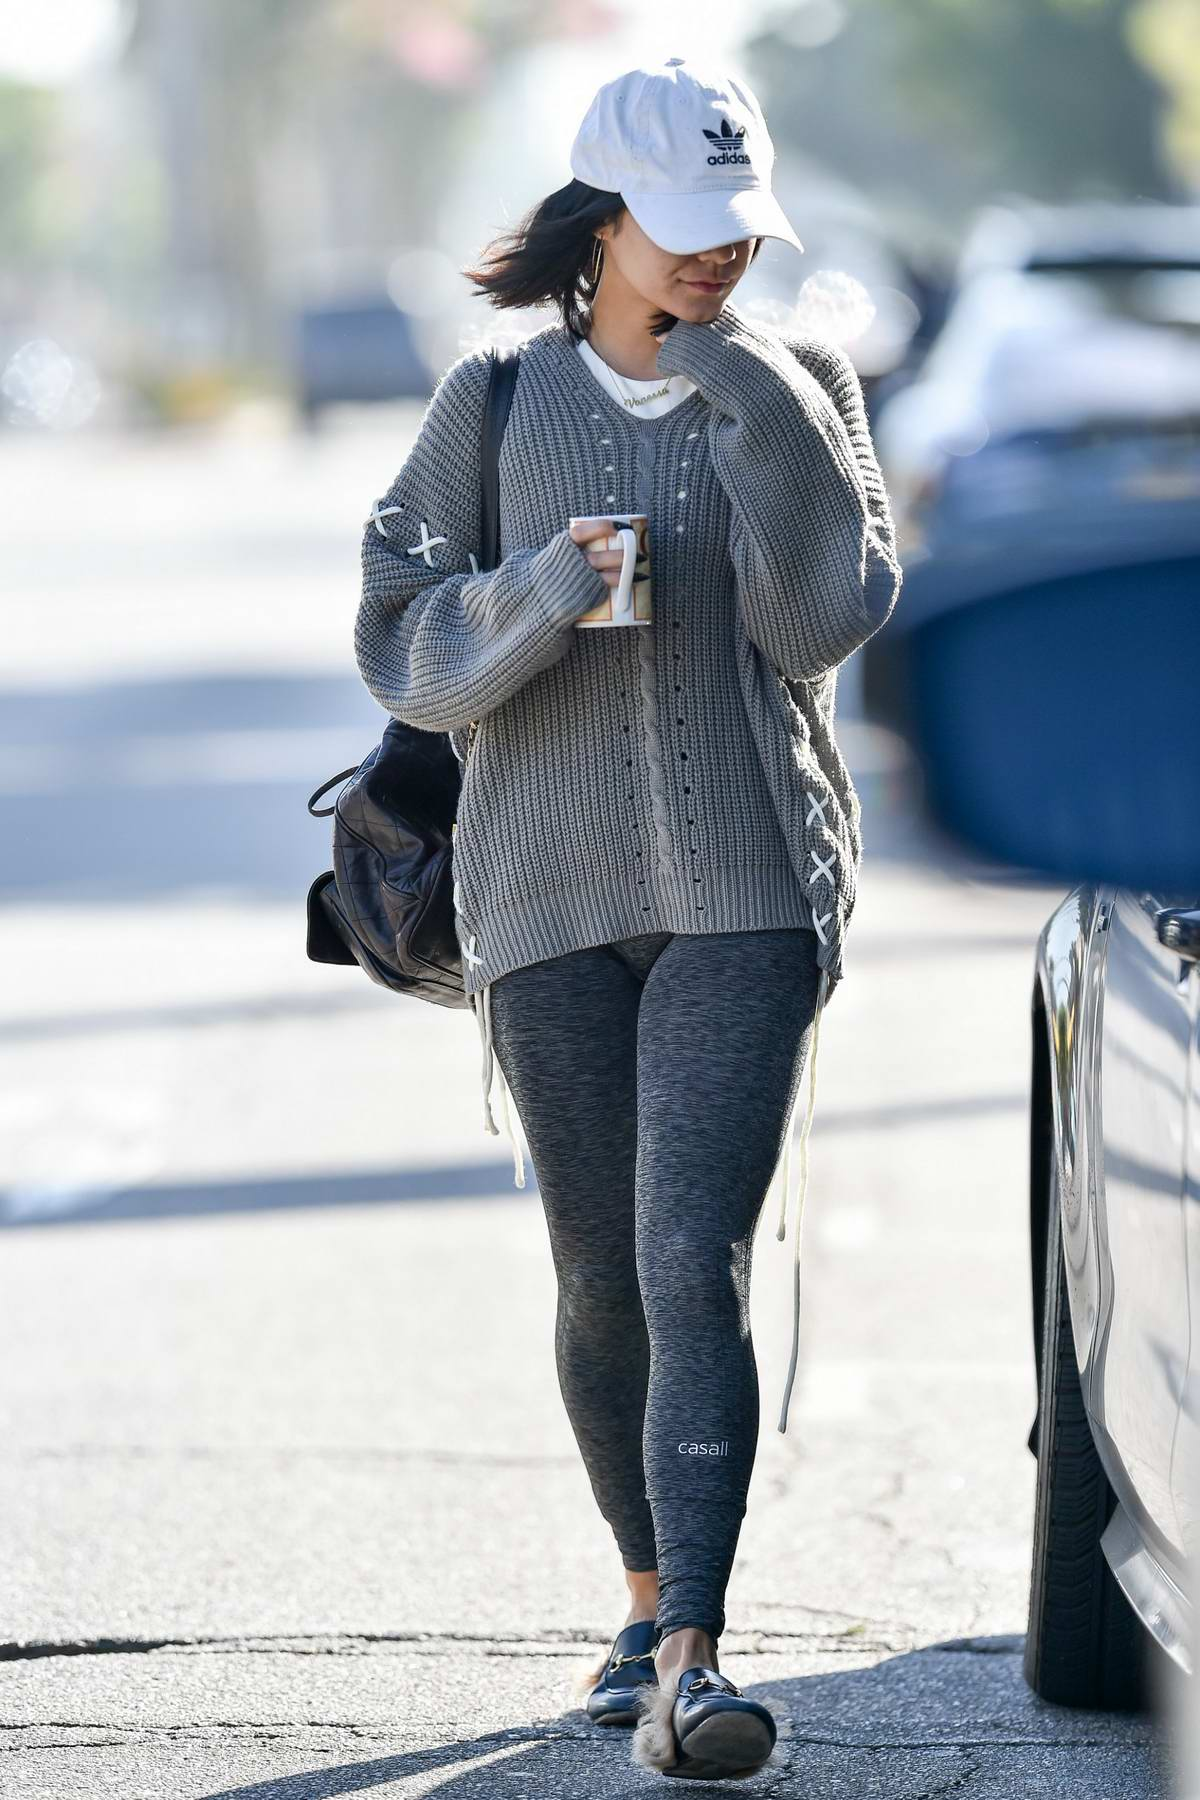 Vanessa Hudgens steps out in a grey sweater, leggings with an Adidas hat as she leaves a Pilates class holding a cup in Los Angeles